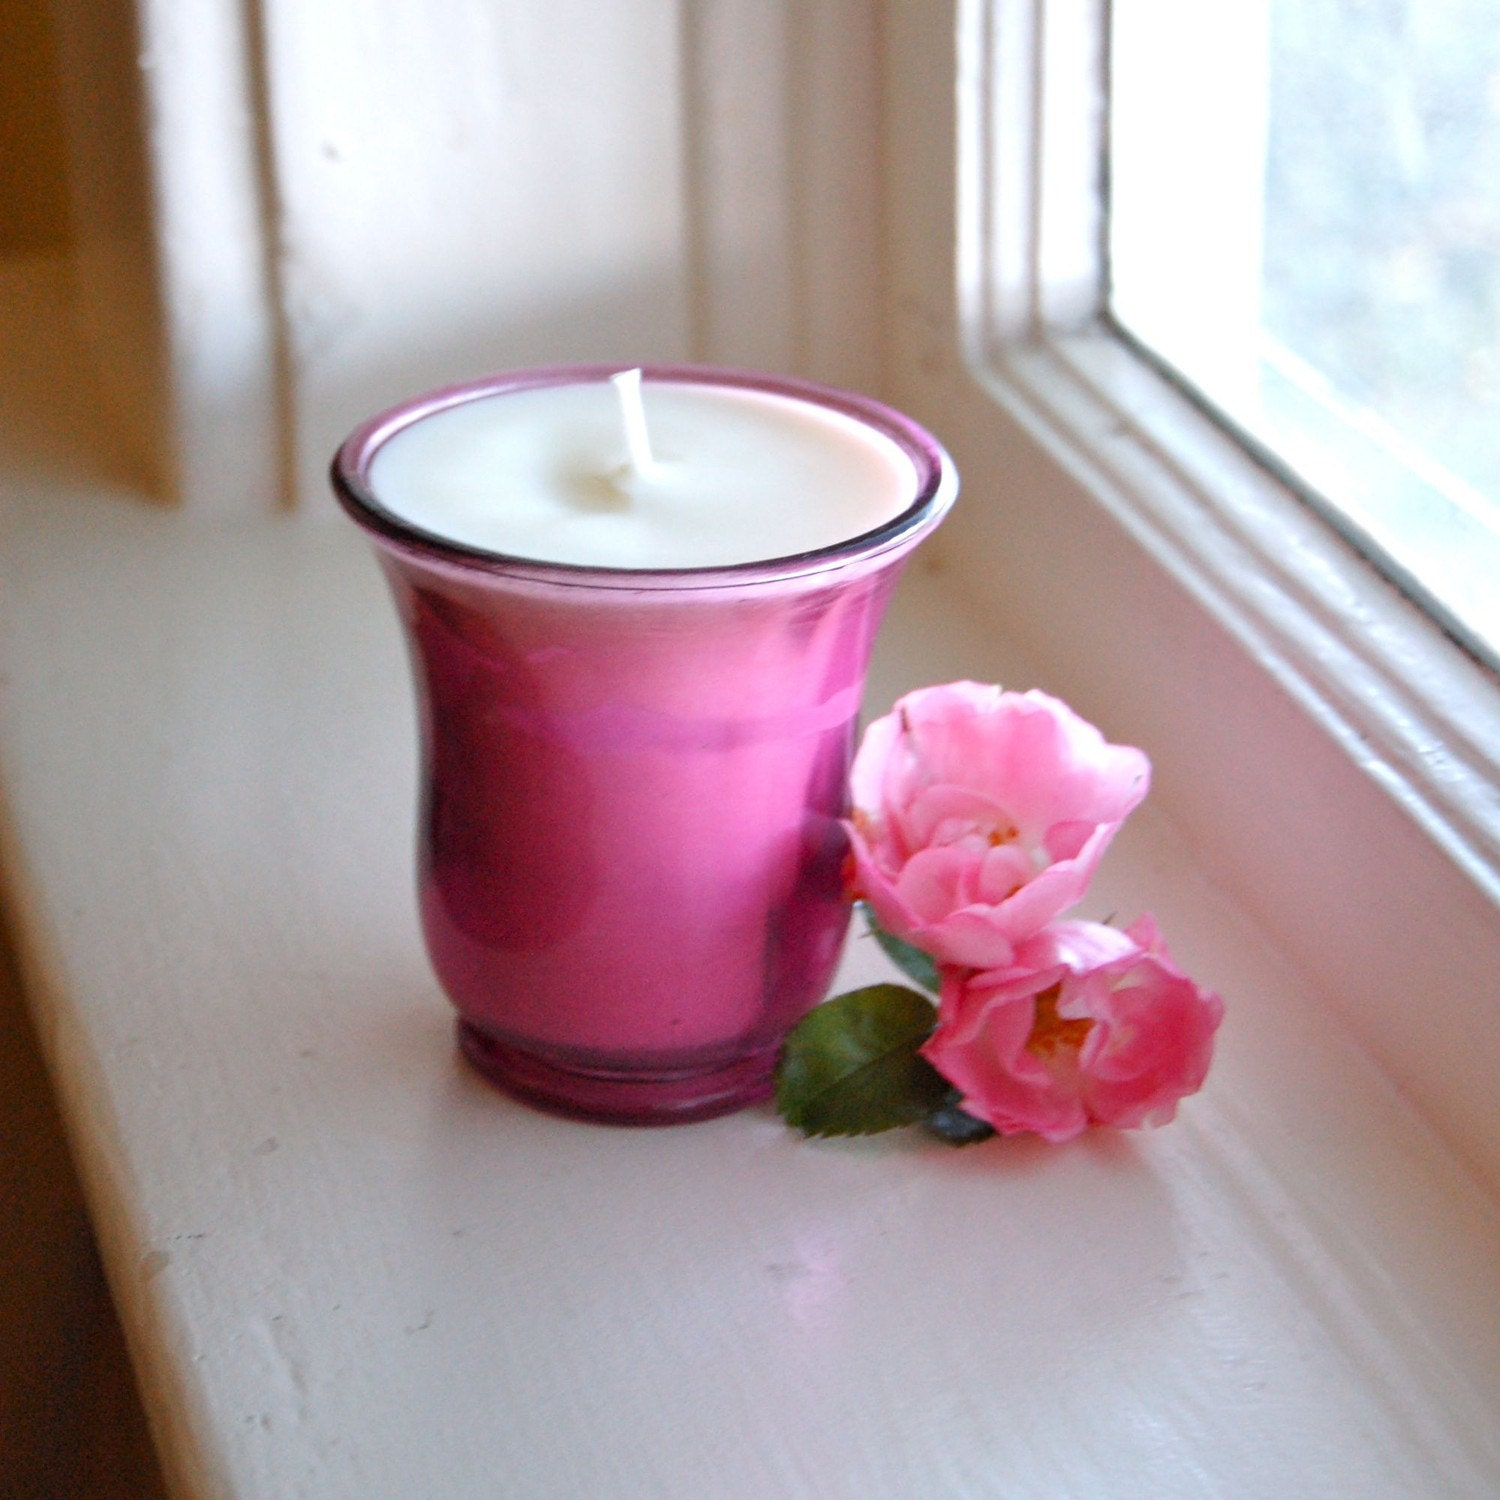 Made to Order Soy Candle: Pink Vintage Inspired Glass